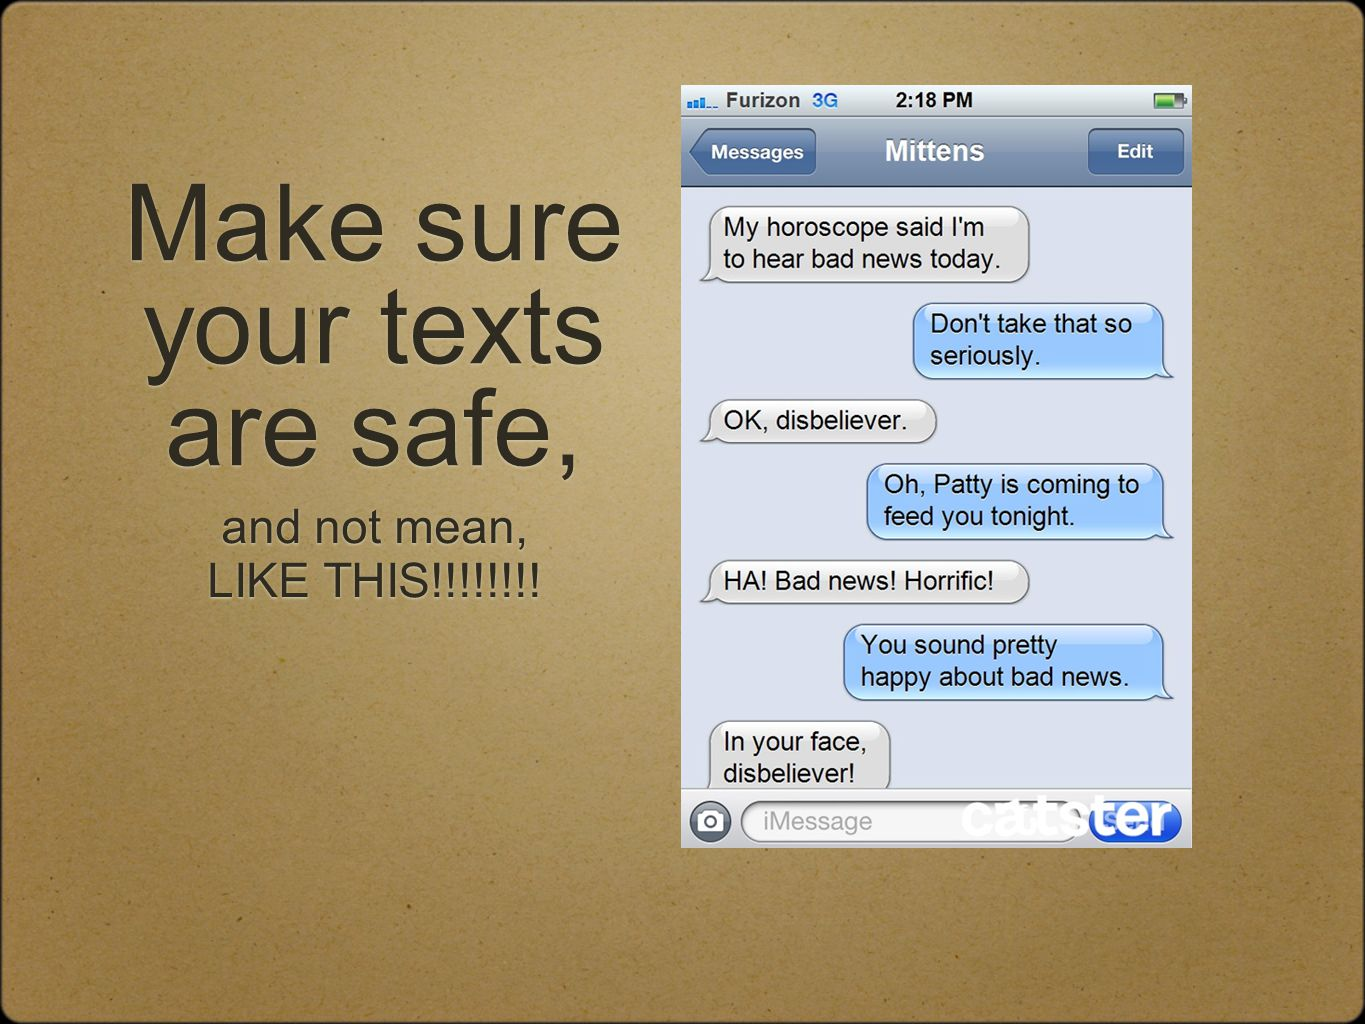 Make sure your texts are safe, and not mean, LIKE THIS!!!!!!!! and not mean, LIKE THIS!!!!!!!!